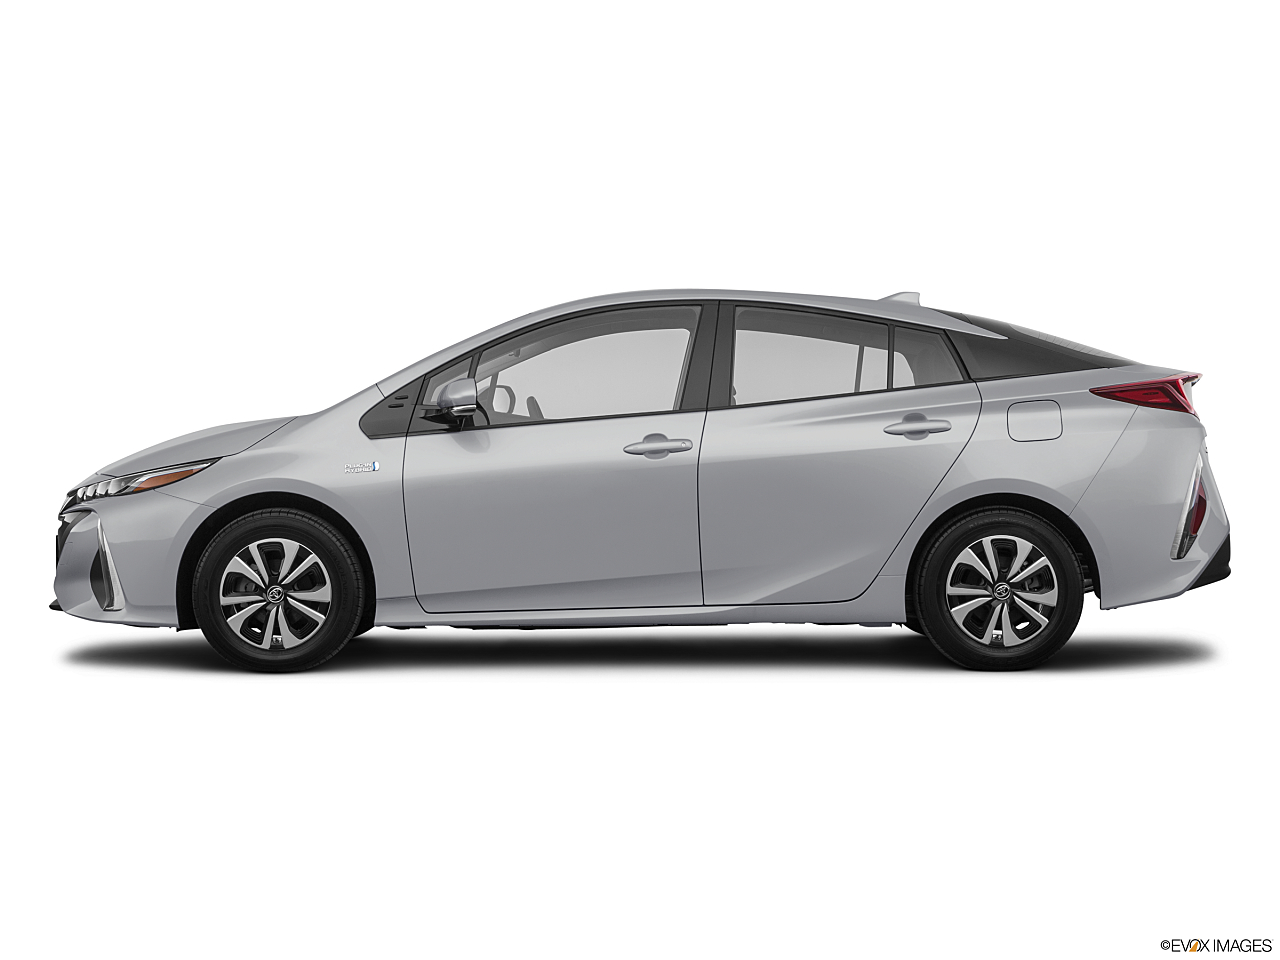 2018 Toyota Prius Prime at Colonial Toyota of Milford, CT. The dealership has not provided a description for the image.